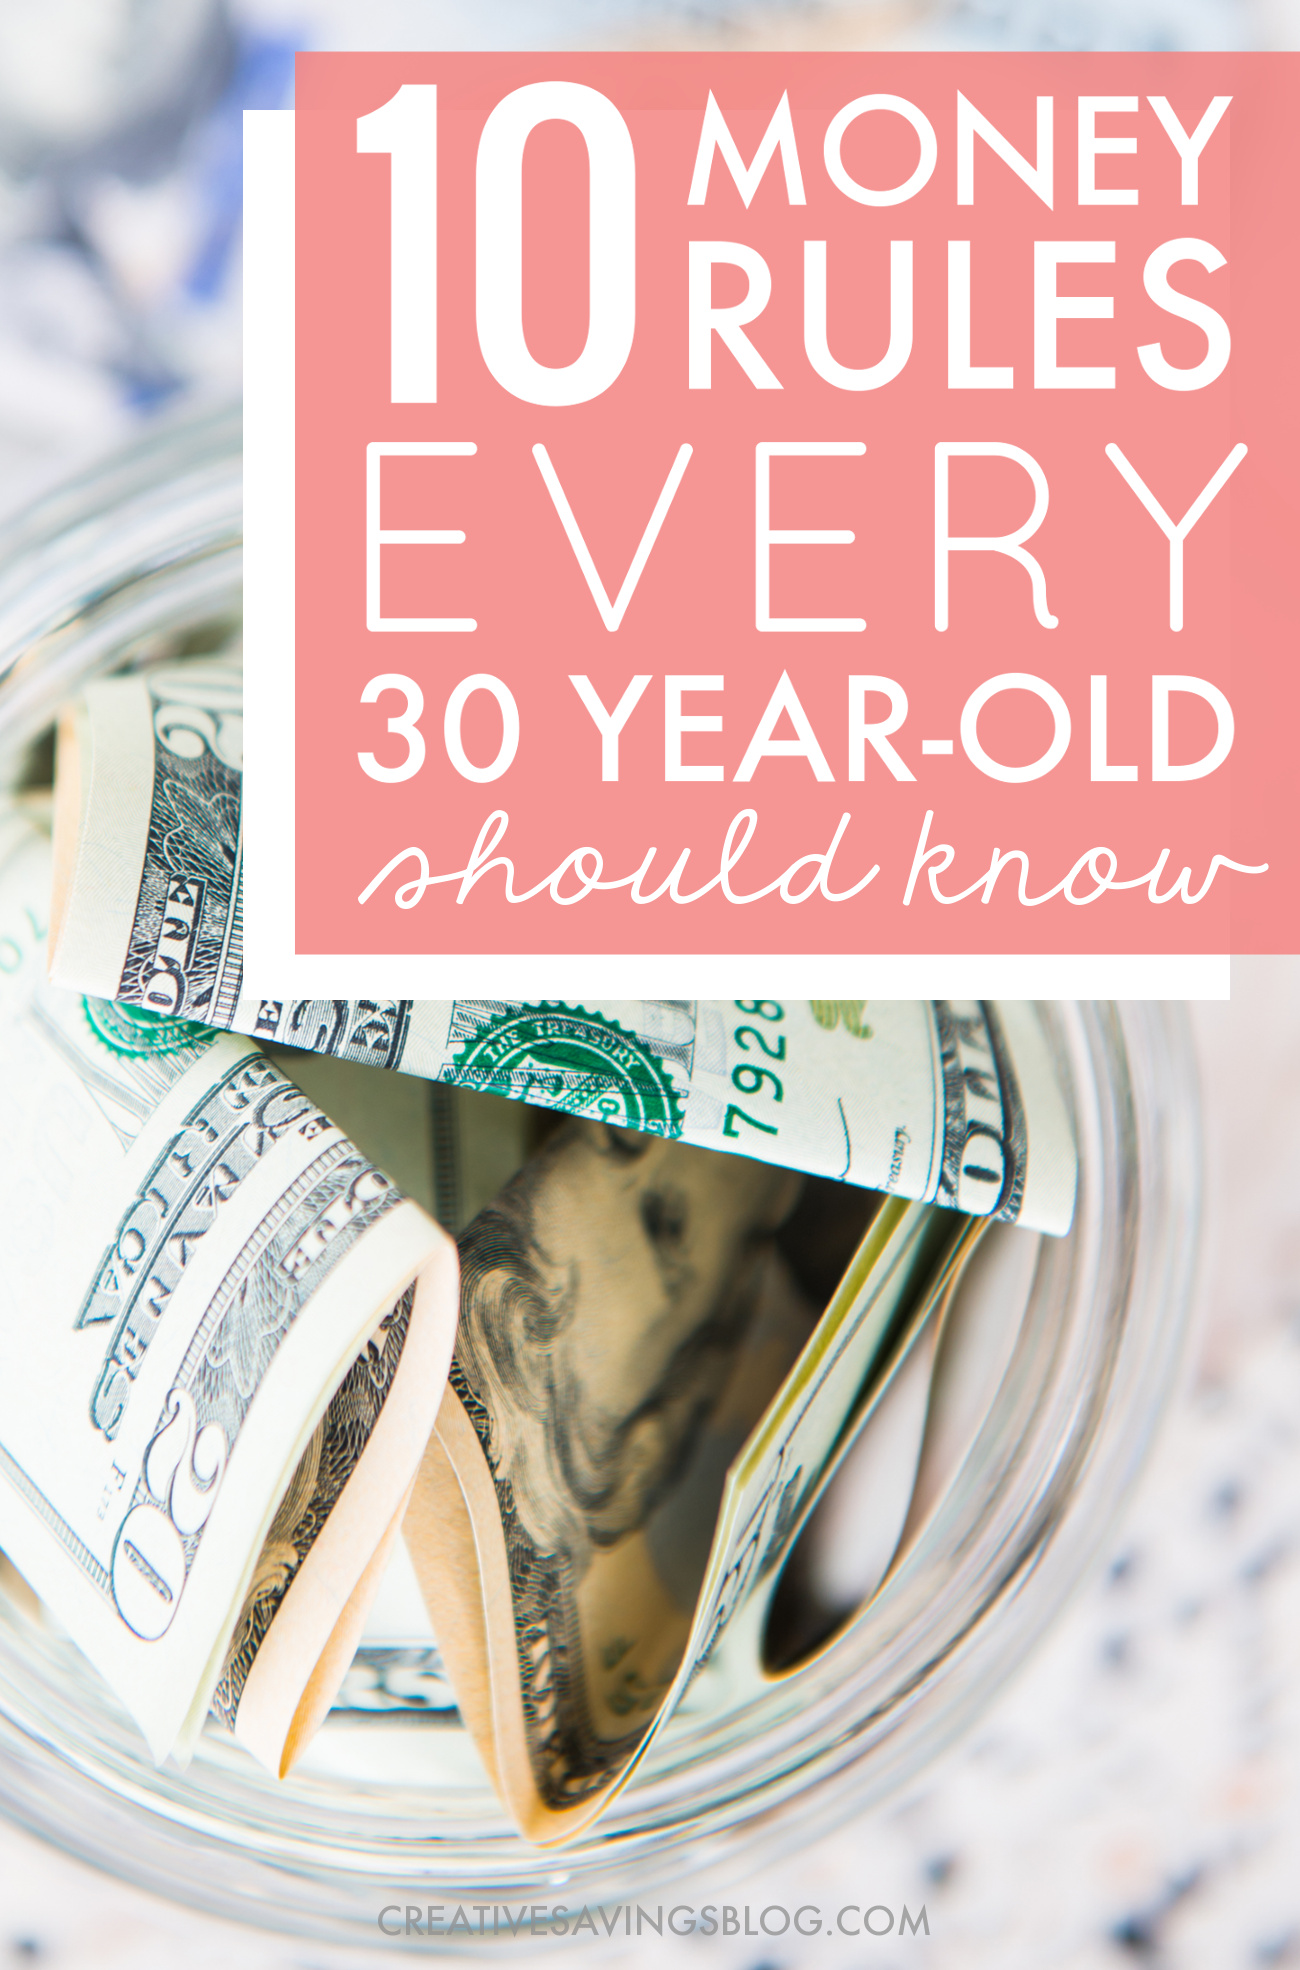 When it comes to financial planning in your 30s, it's all about avoiding money mistakes and smart planning for retirement. These money tips for your 30s are exactly what you need to kick your butt in gear! Don't just read it, follow the advice!!!